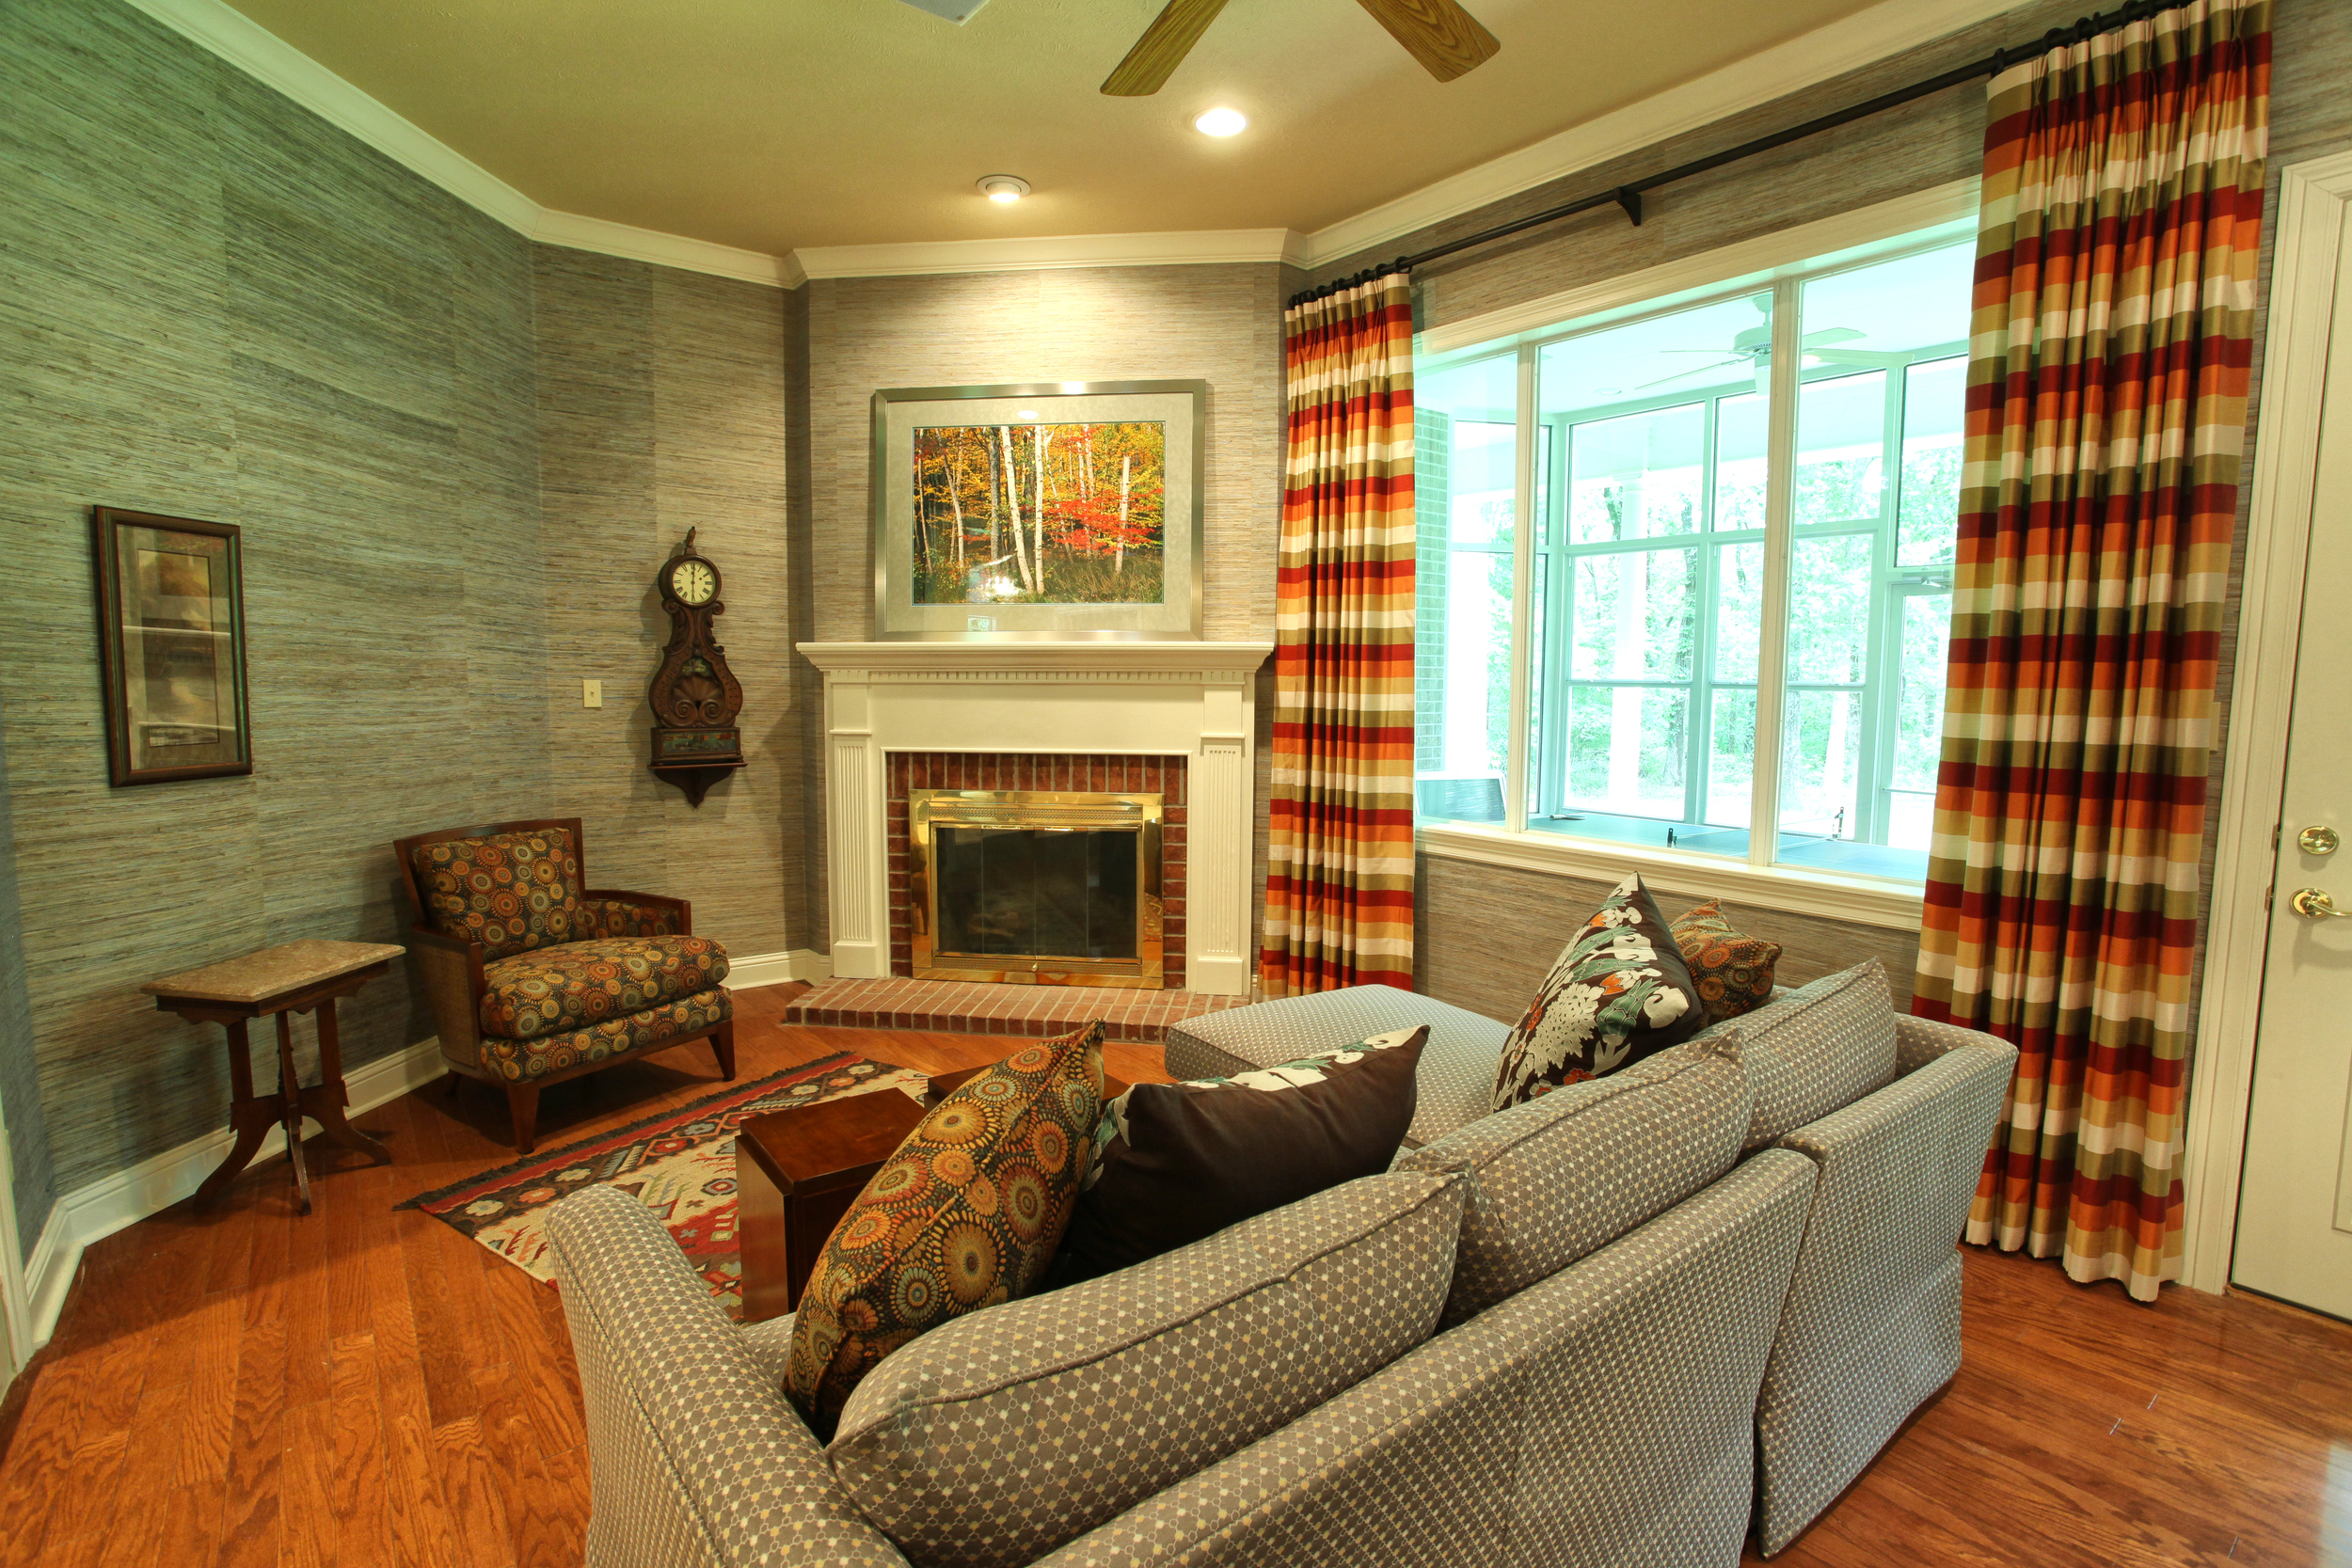 Nacogdoches, Tx interior design - South West inspired living room